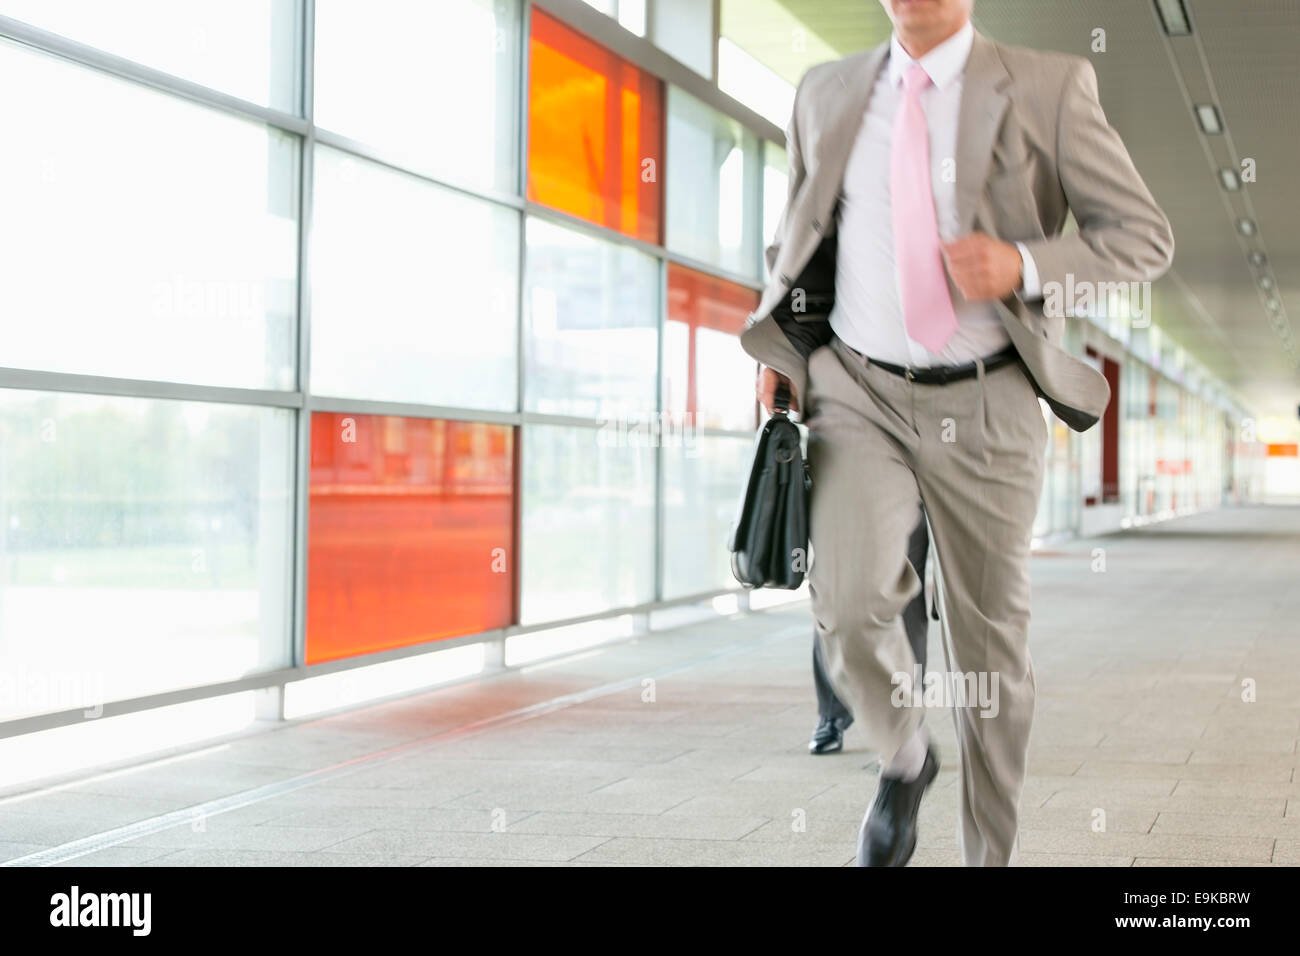 Midsection of businessmen rushing on railroad platform - Stock Image